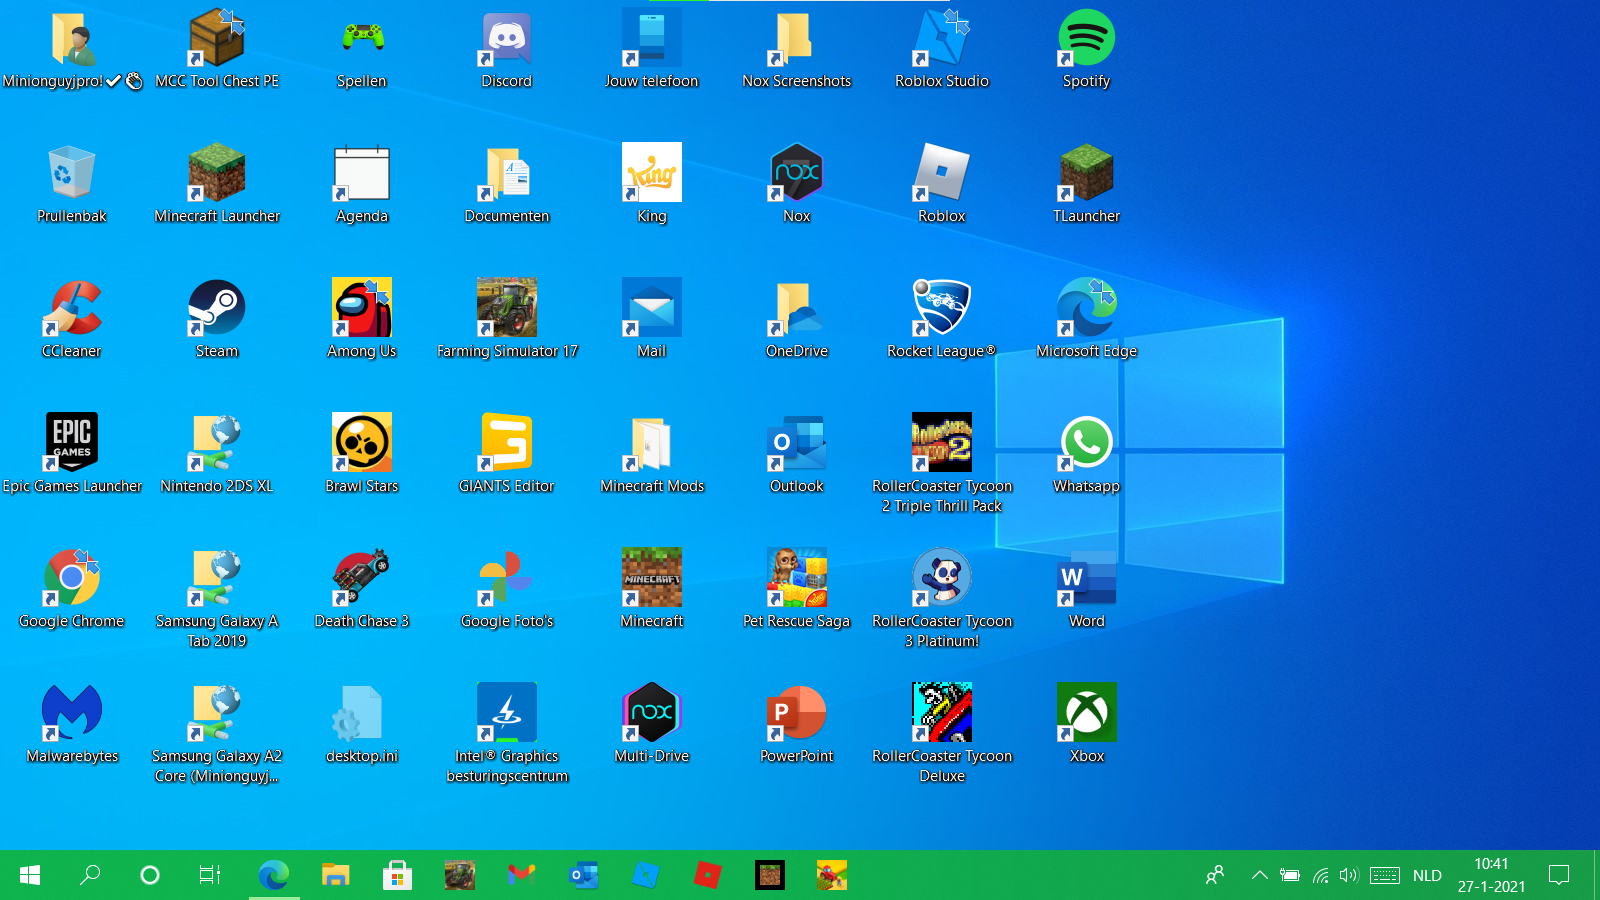 Desktop icons changed place after ...